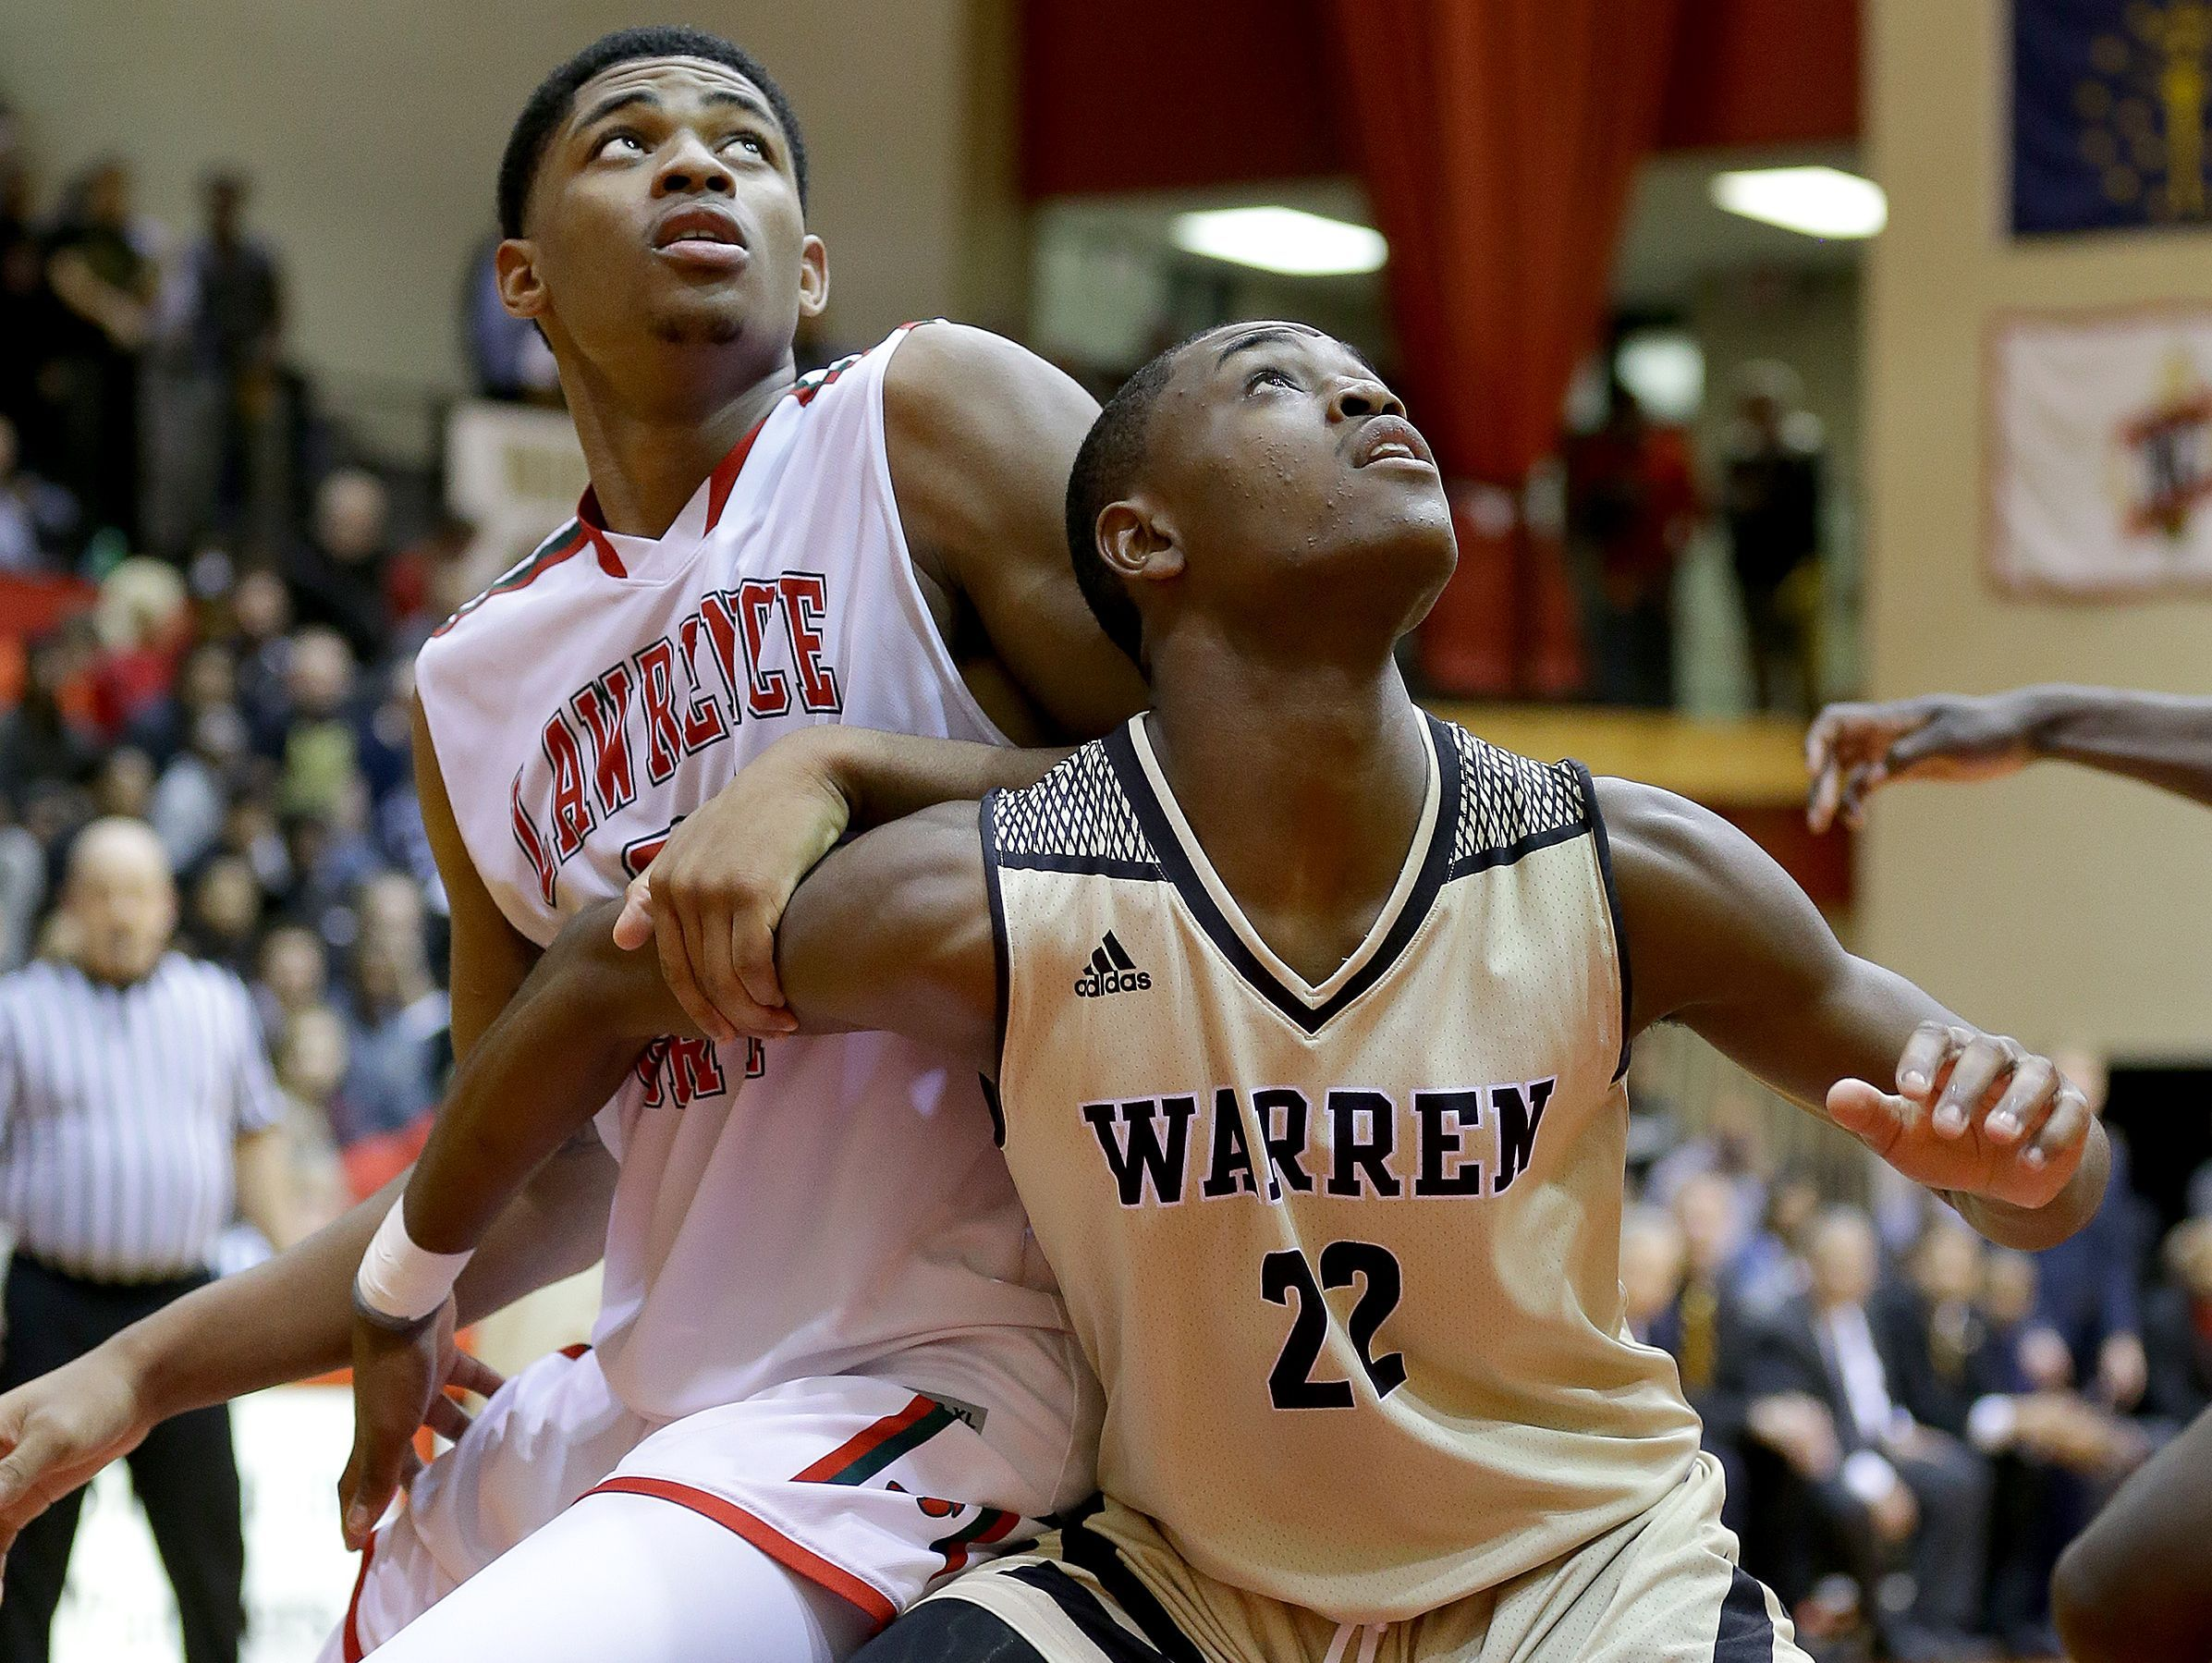 Lawrence North Wildcats Kevin Easley (34) and Warren Central Warriors Jakobie Robinson (23) fight for position under the basket in the second half of their game Tuesday, February 28, 2017, evening at North Central High School. The Lawrence North Wildcats defeated the Warren Central Warriors 60-54.